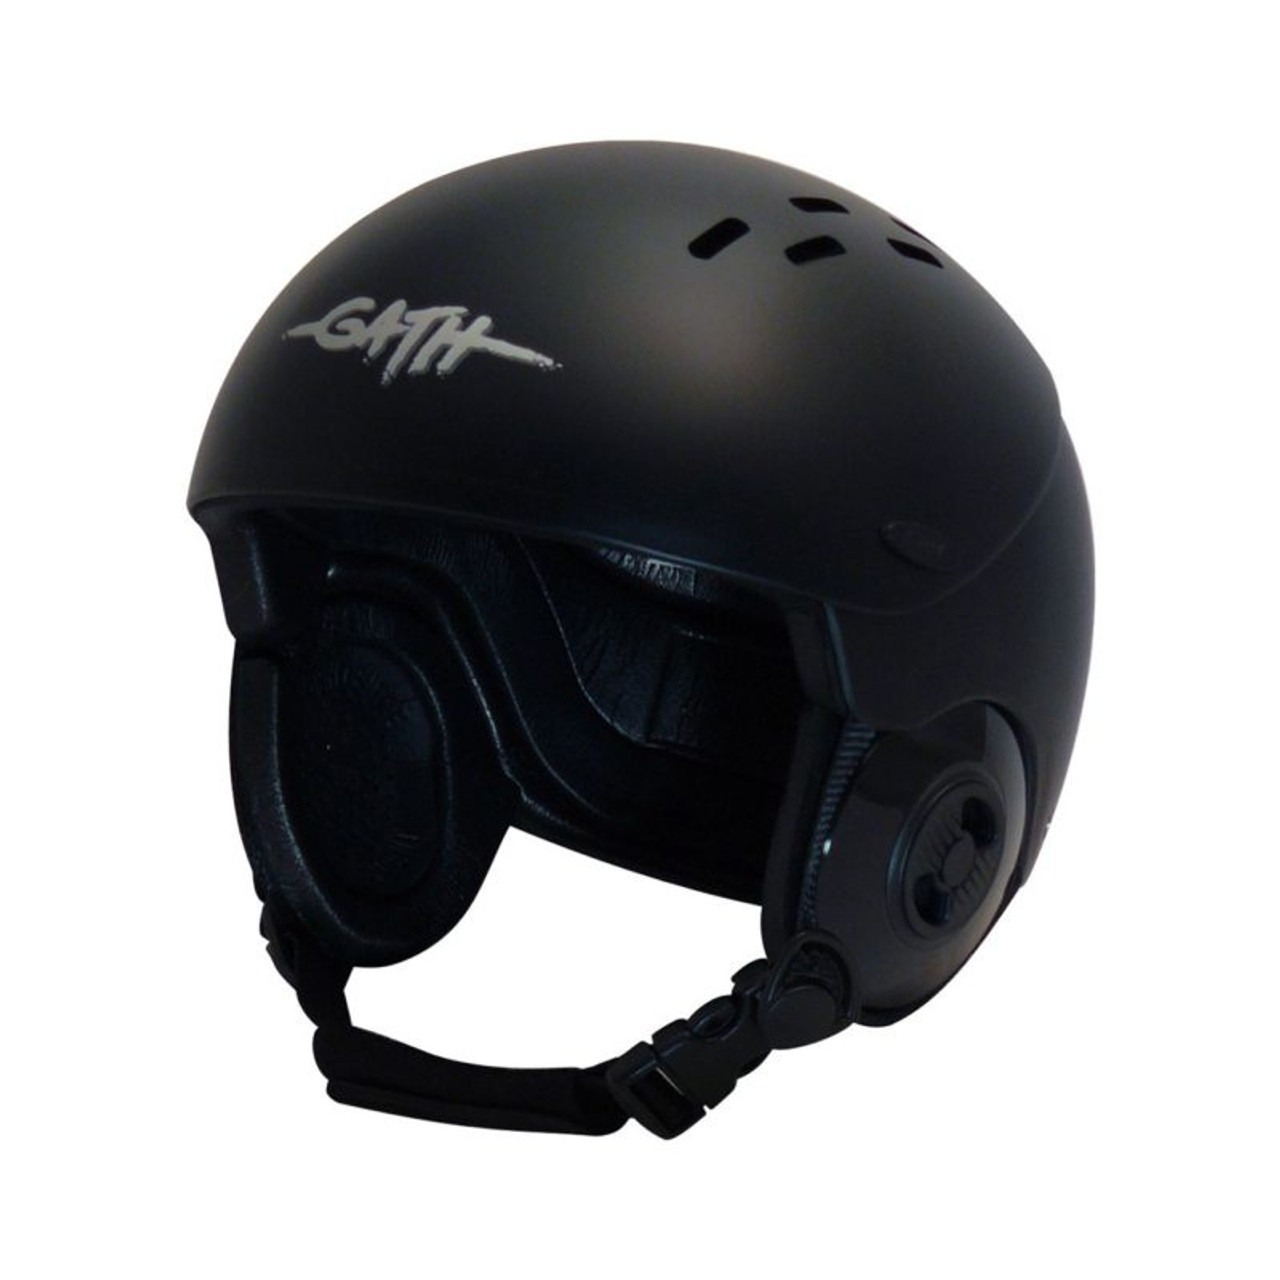 Gath Gedi Sports Helmet - Black